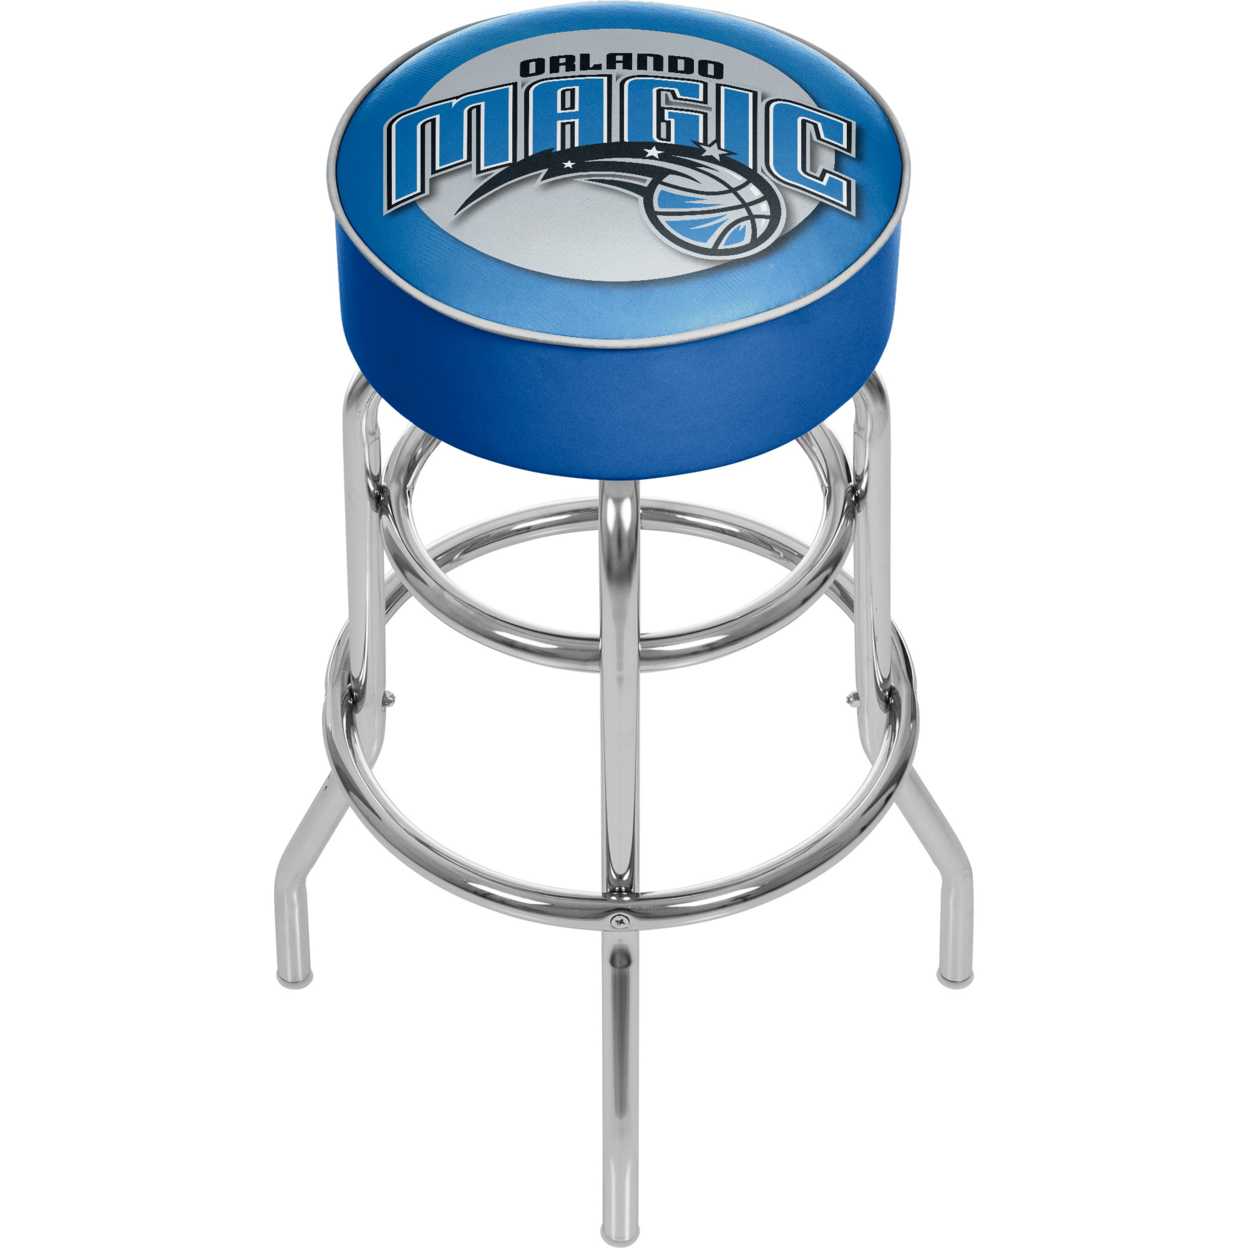 Orlando Magic NBA Padded Swivel Bar Stool 30 Inches High фанатская атрибутика nike curry nba